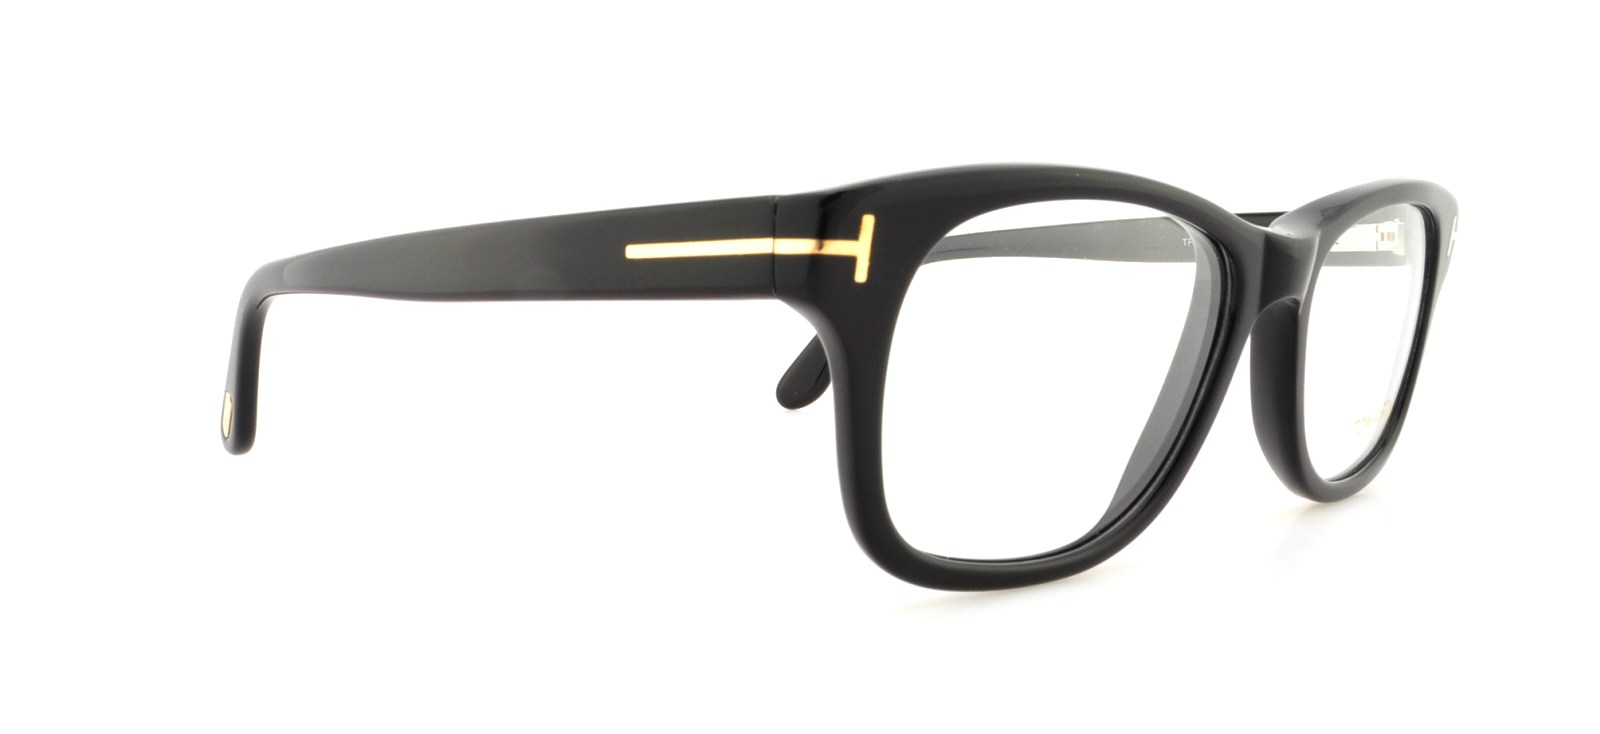 9abb9476df3 TOM FORD Eyeglasses FT5147 001 Shiny Black 52MM - Walmart.com